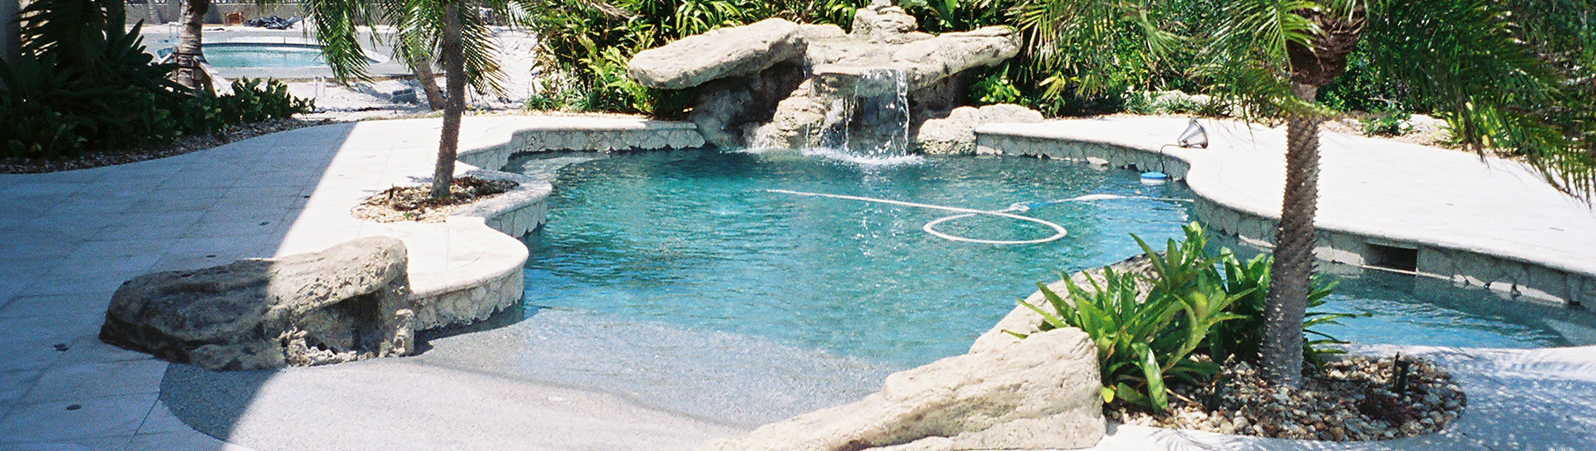 national pool design will work with you from concept to completion